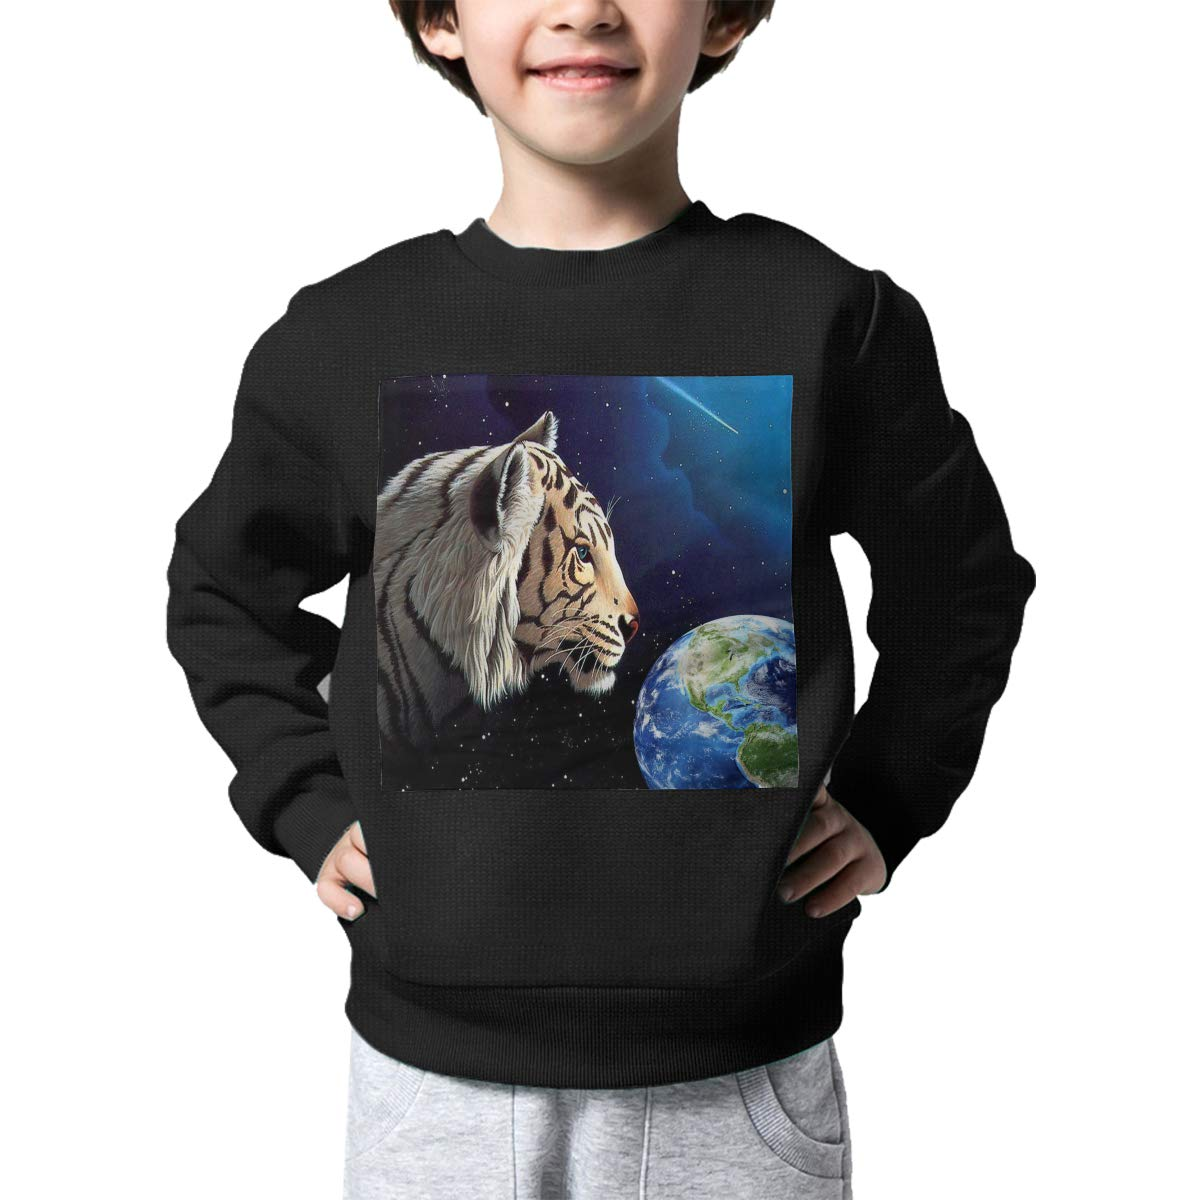 White Tiger Guarding The Earth Kids Pullover Sweater Funny Crew Neck Knitted Sweater for 2-6T